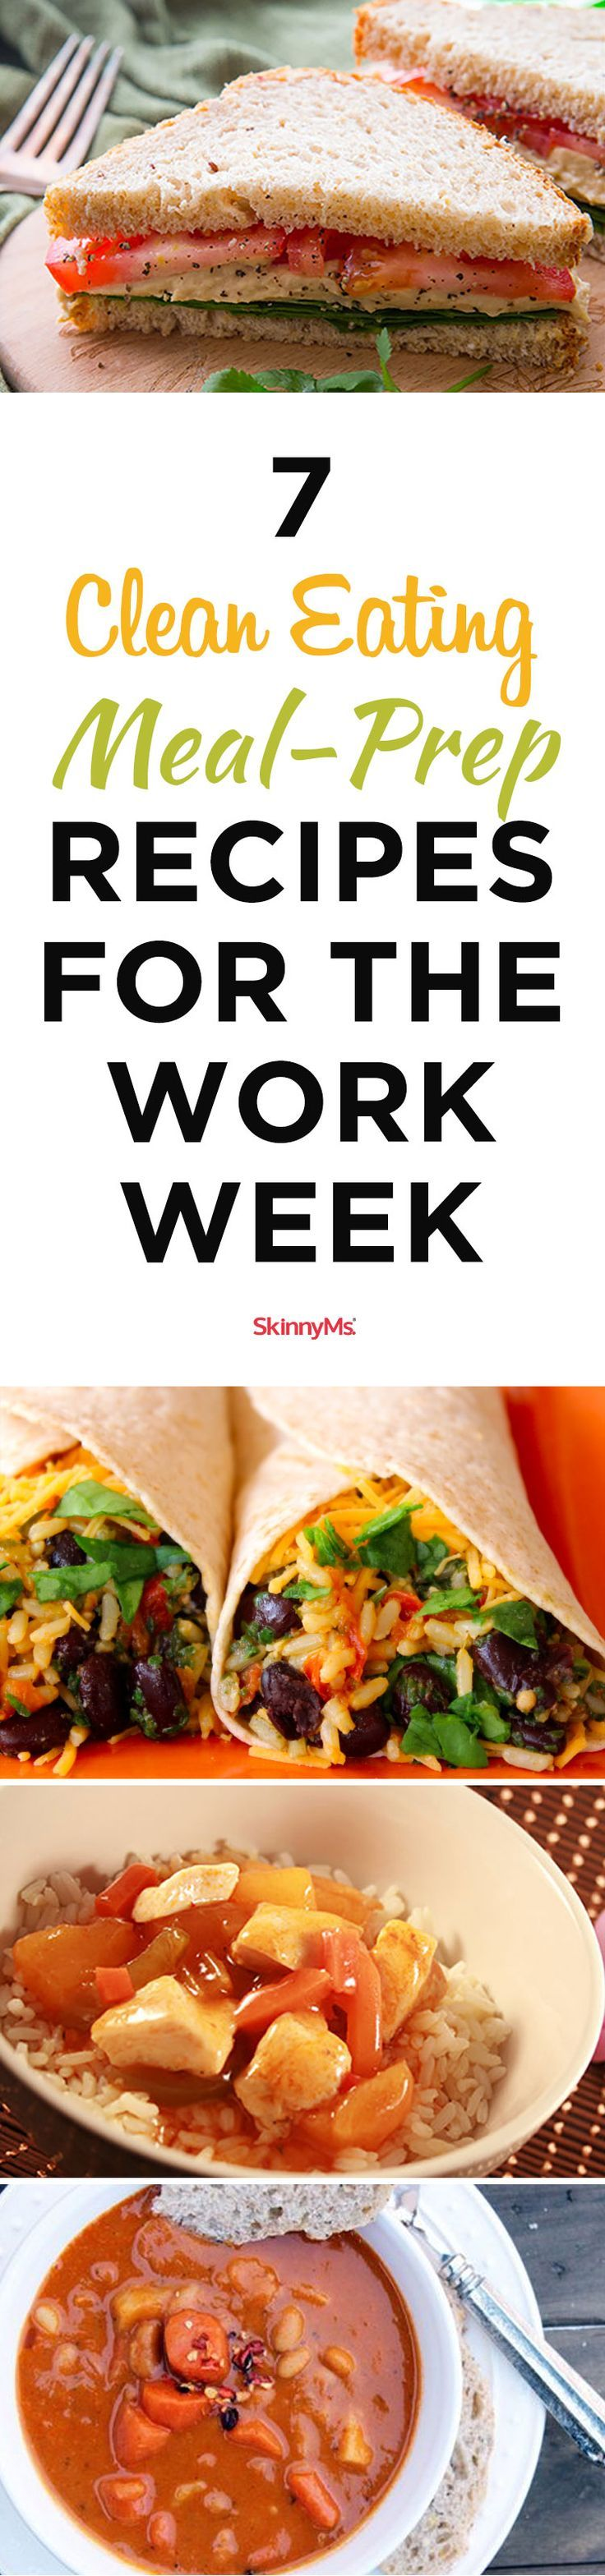 7 Clean Eating Meal-Prep Recipes for the Work Week #sundaymealprep #workweek #recipes #cleaneating #mealprep